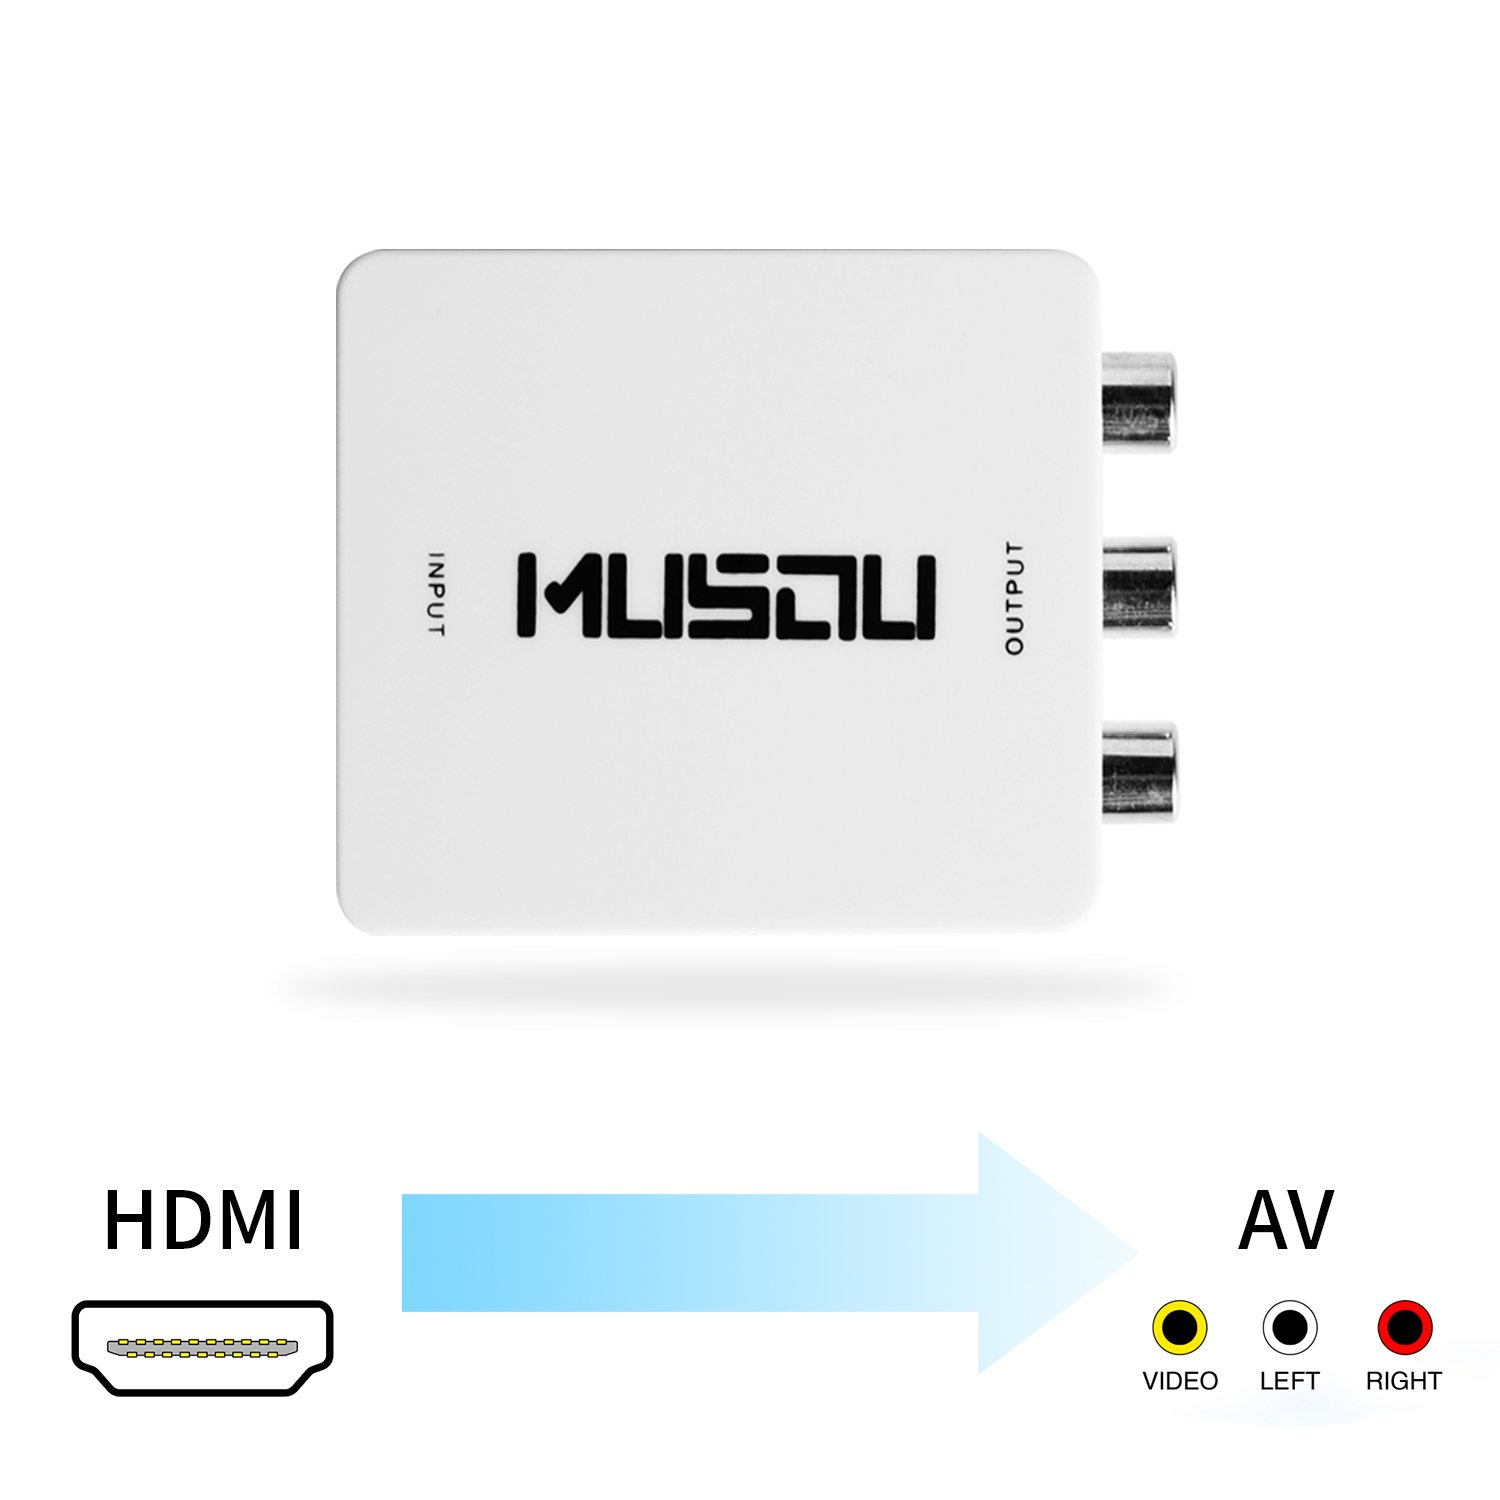 HDMI to RCA,Musou HDMI RCA Converter,HDMI to AV Composite Video Audio Converter Adapter Powered by USB Cable,White by Musou